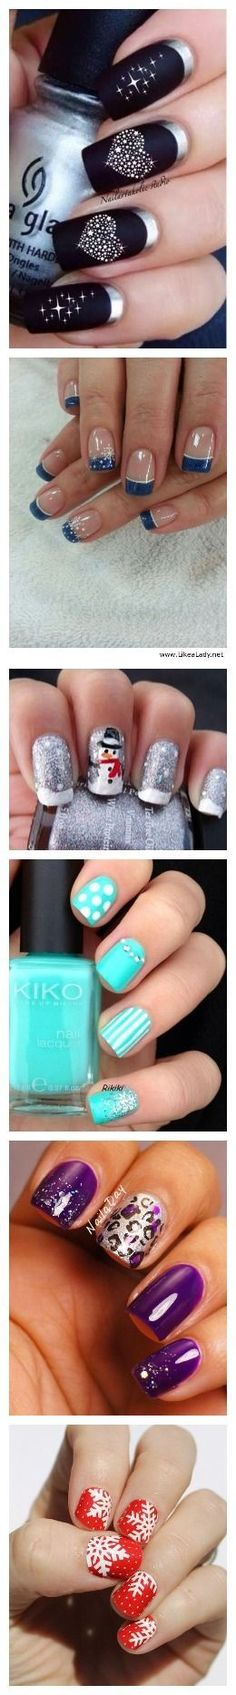 ... - Pepino Nail Art Design